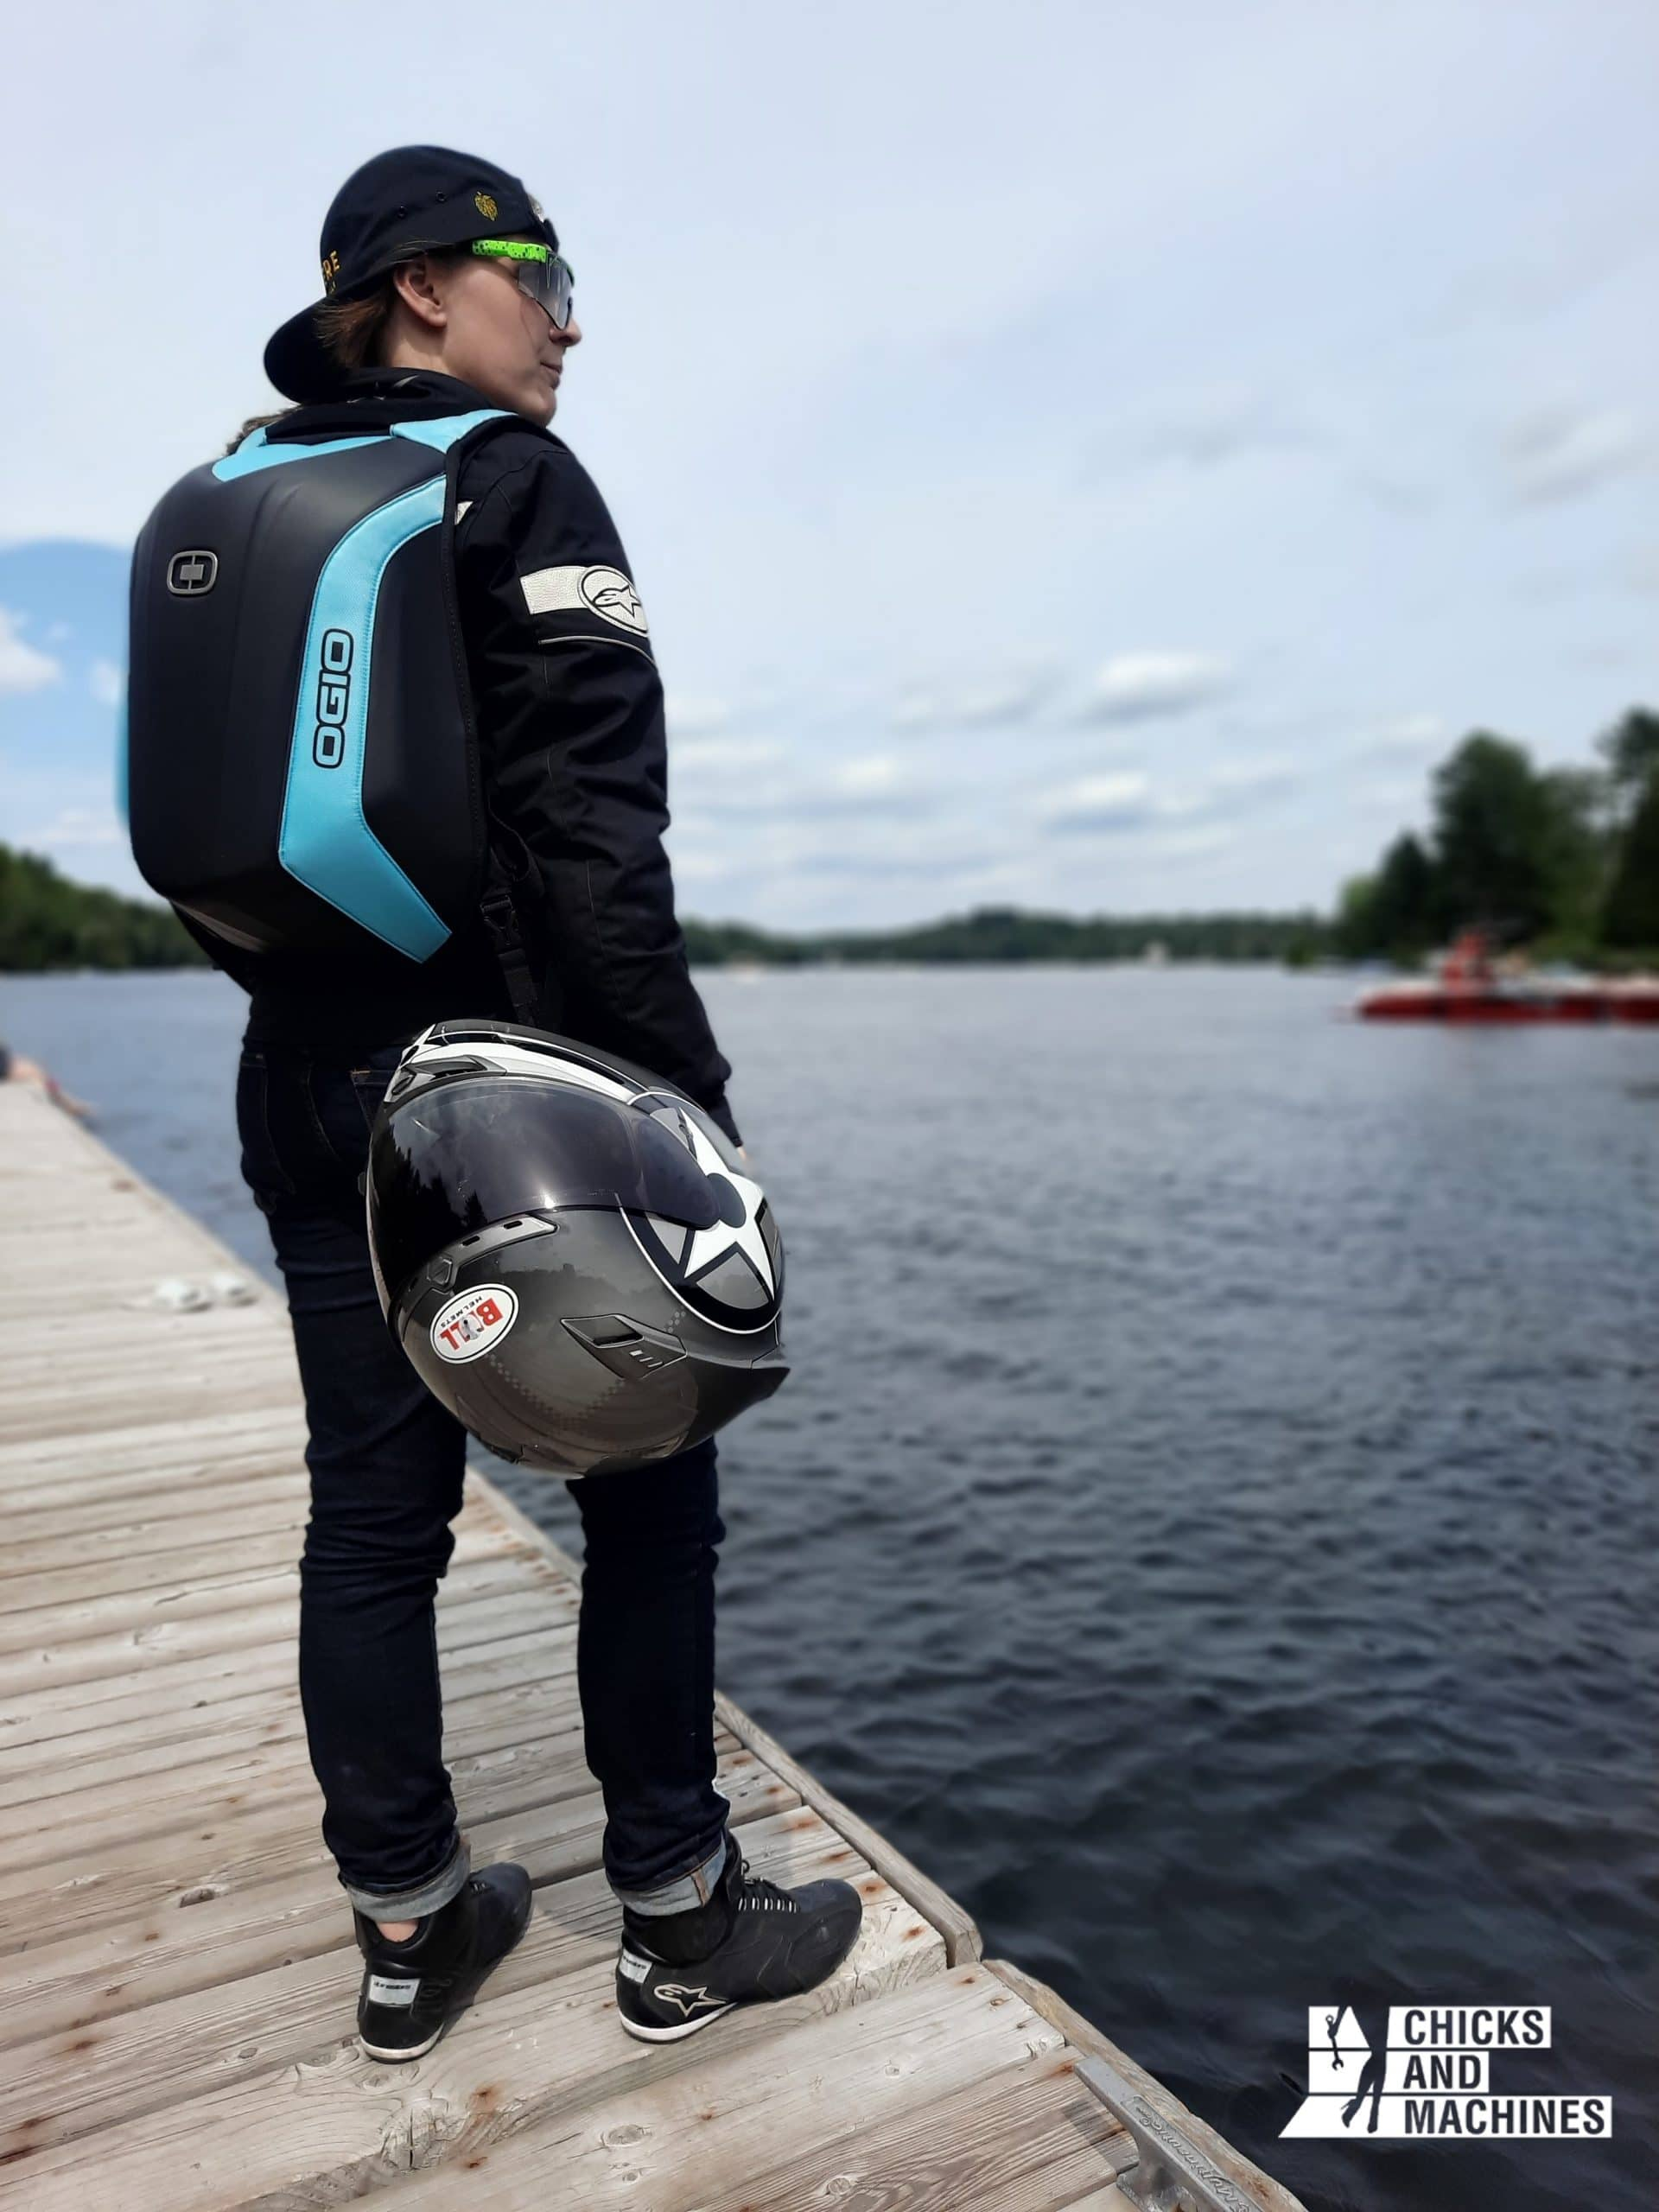 The removable strap of the OGIO Mach 3S LE bag keeps your hands free!